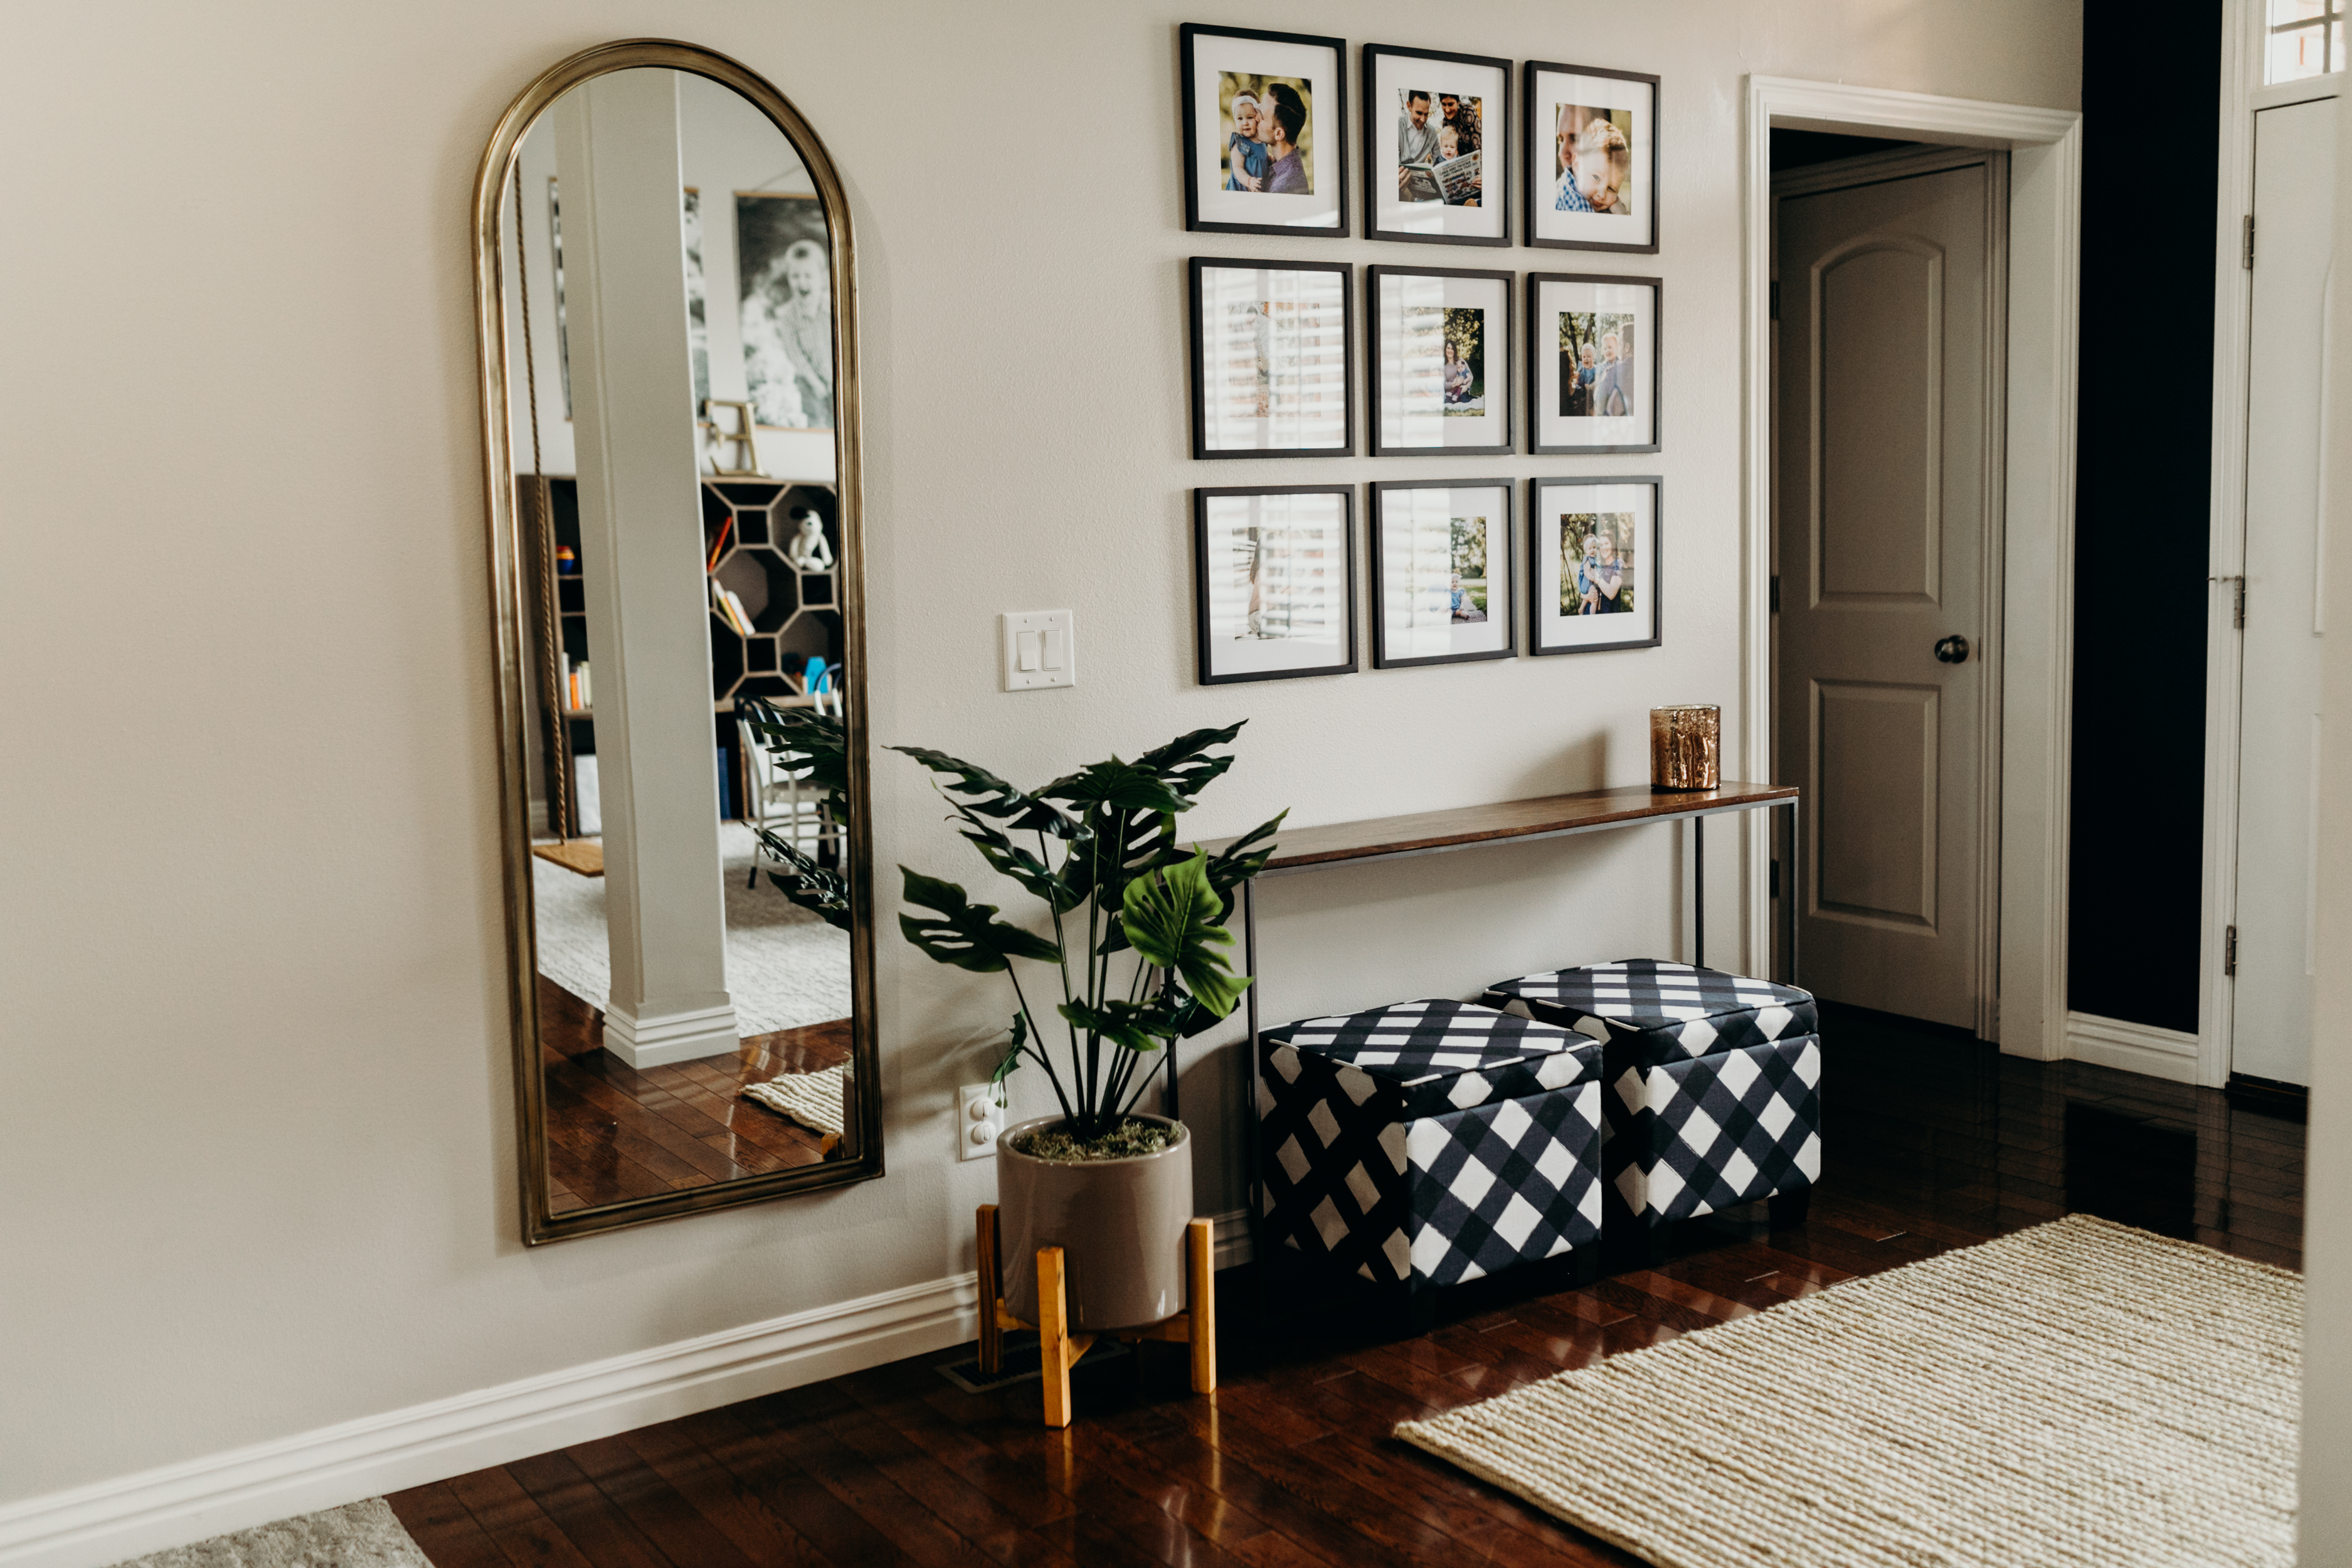 Entry way with mirror, picture frames, and small table